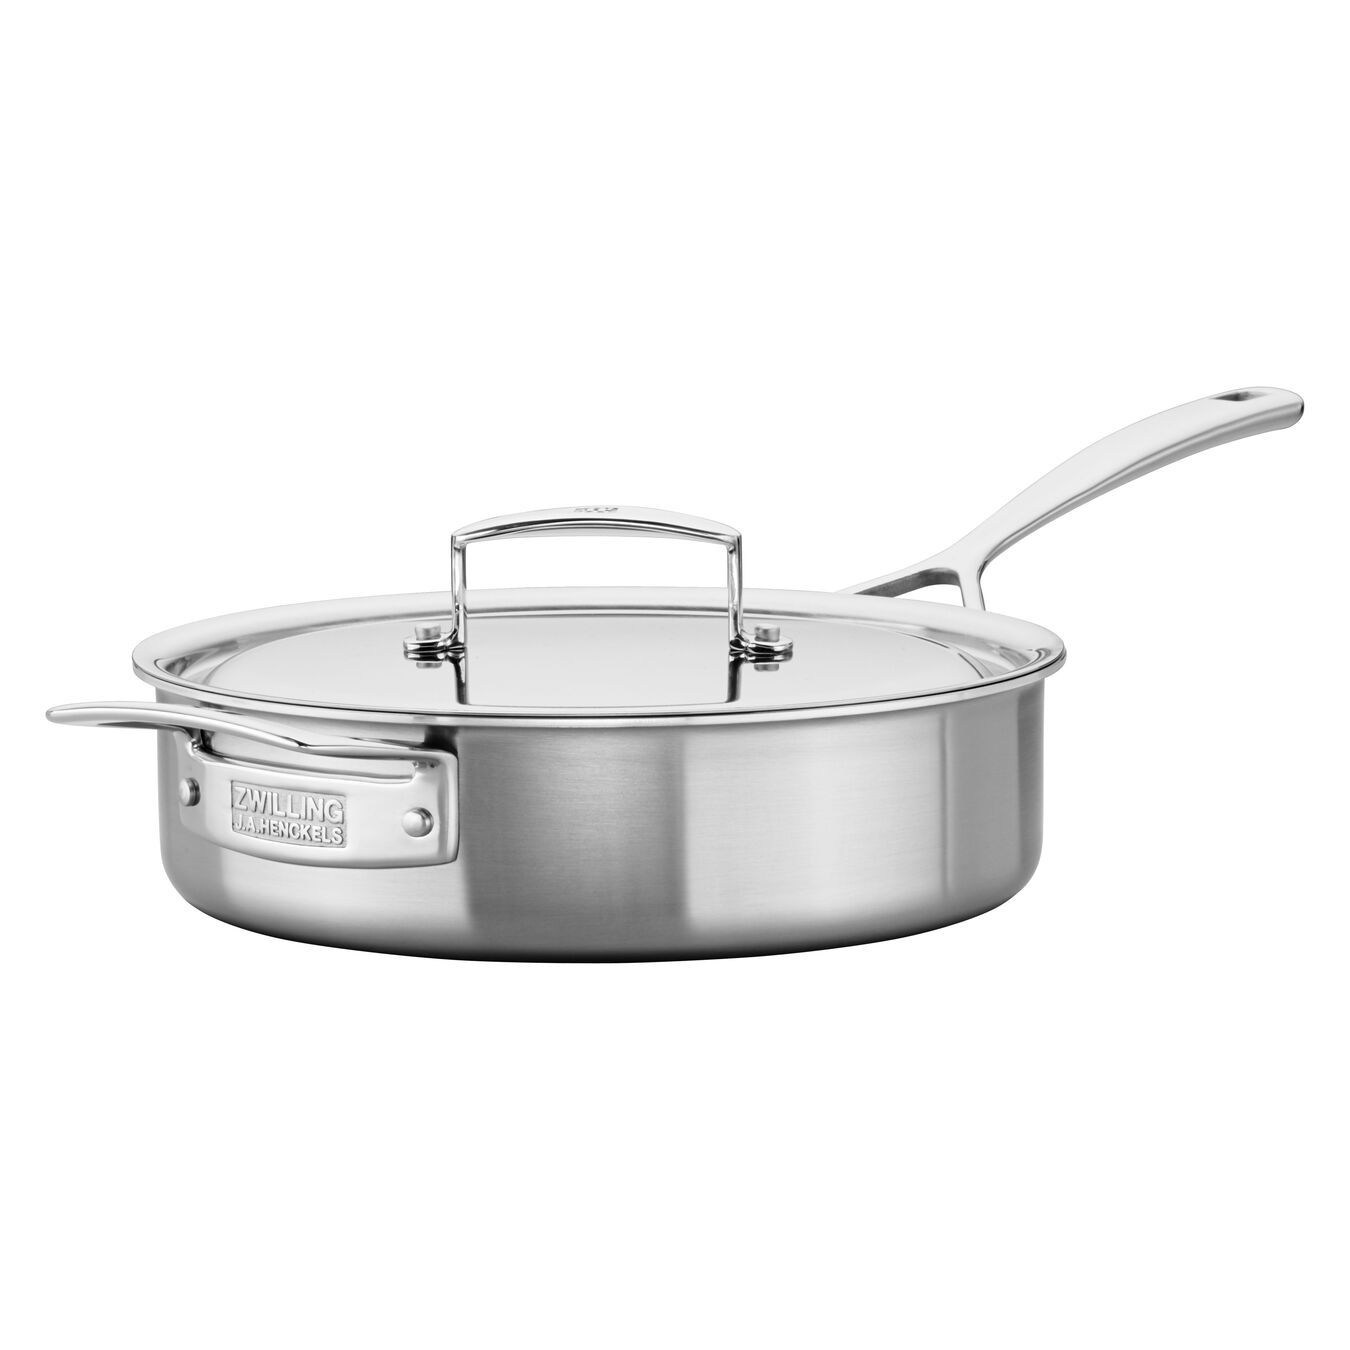 Stainless Steel 3-Qt. Saute Pan,,large 3